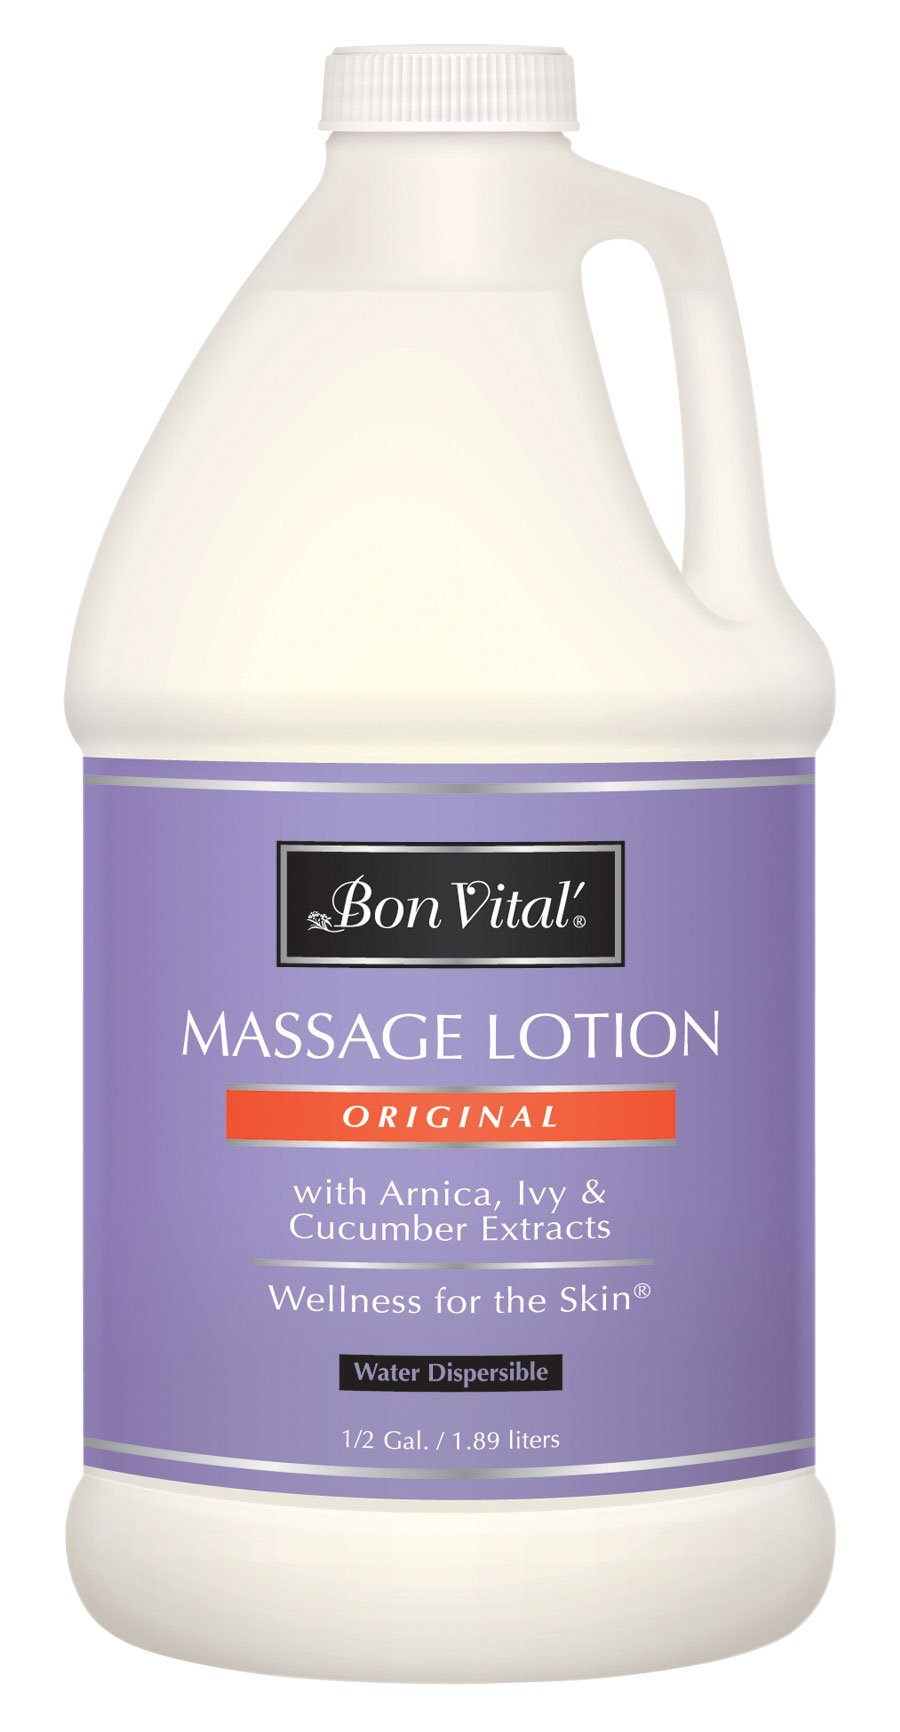 Bon Vital' Original Massage Lotion for a Versatile Massage Foundation to Relax Sore Muscles & Repair Dry Skin, Lightweight, Non-Greasy Formula to Moisturize and Repair Dry Skin, 1/2 Gallon Bottle by Bon Vital